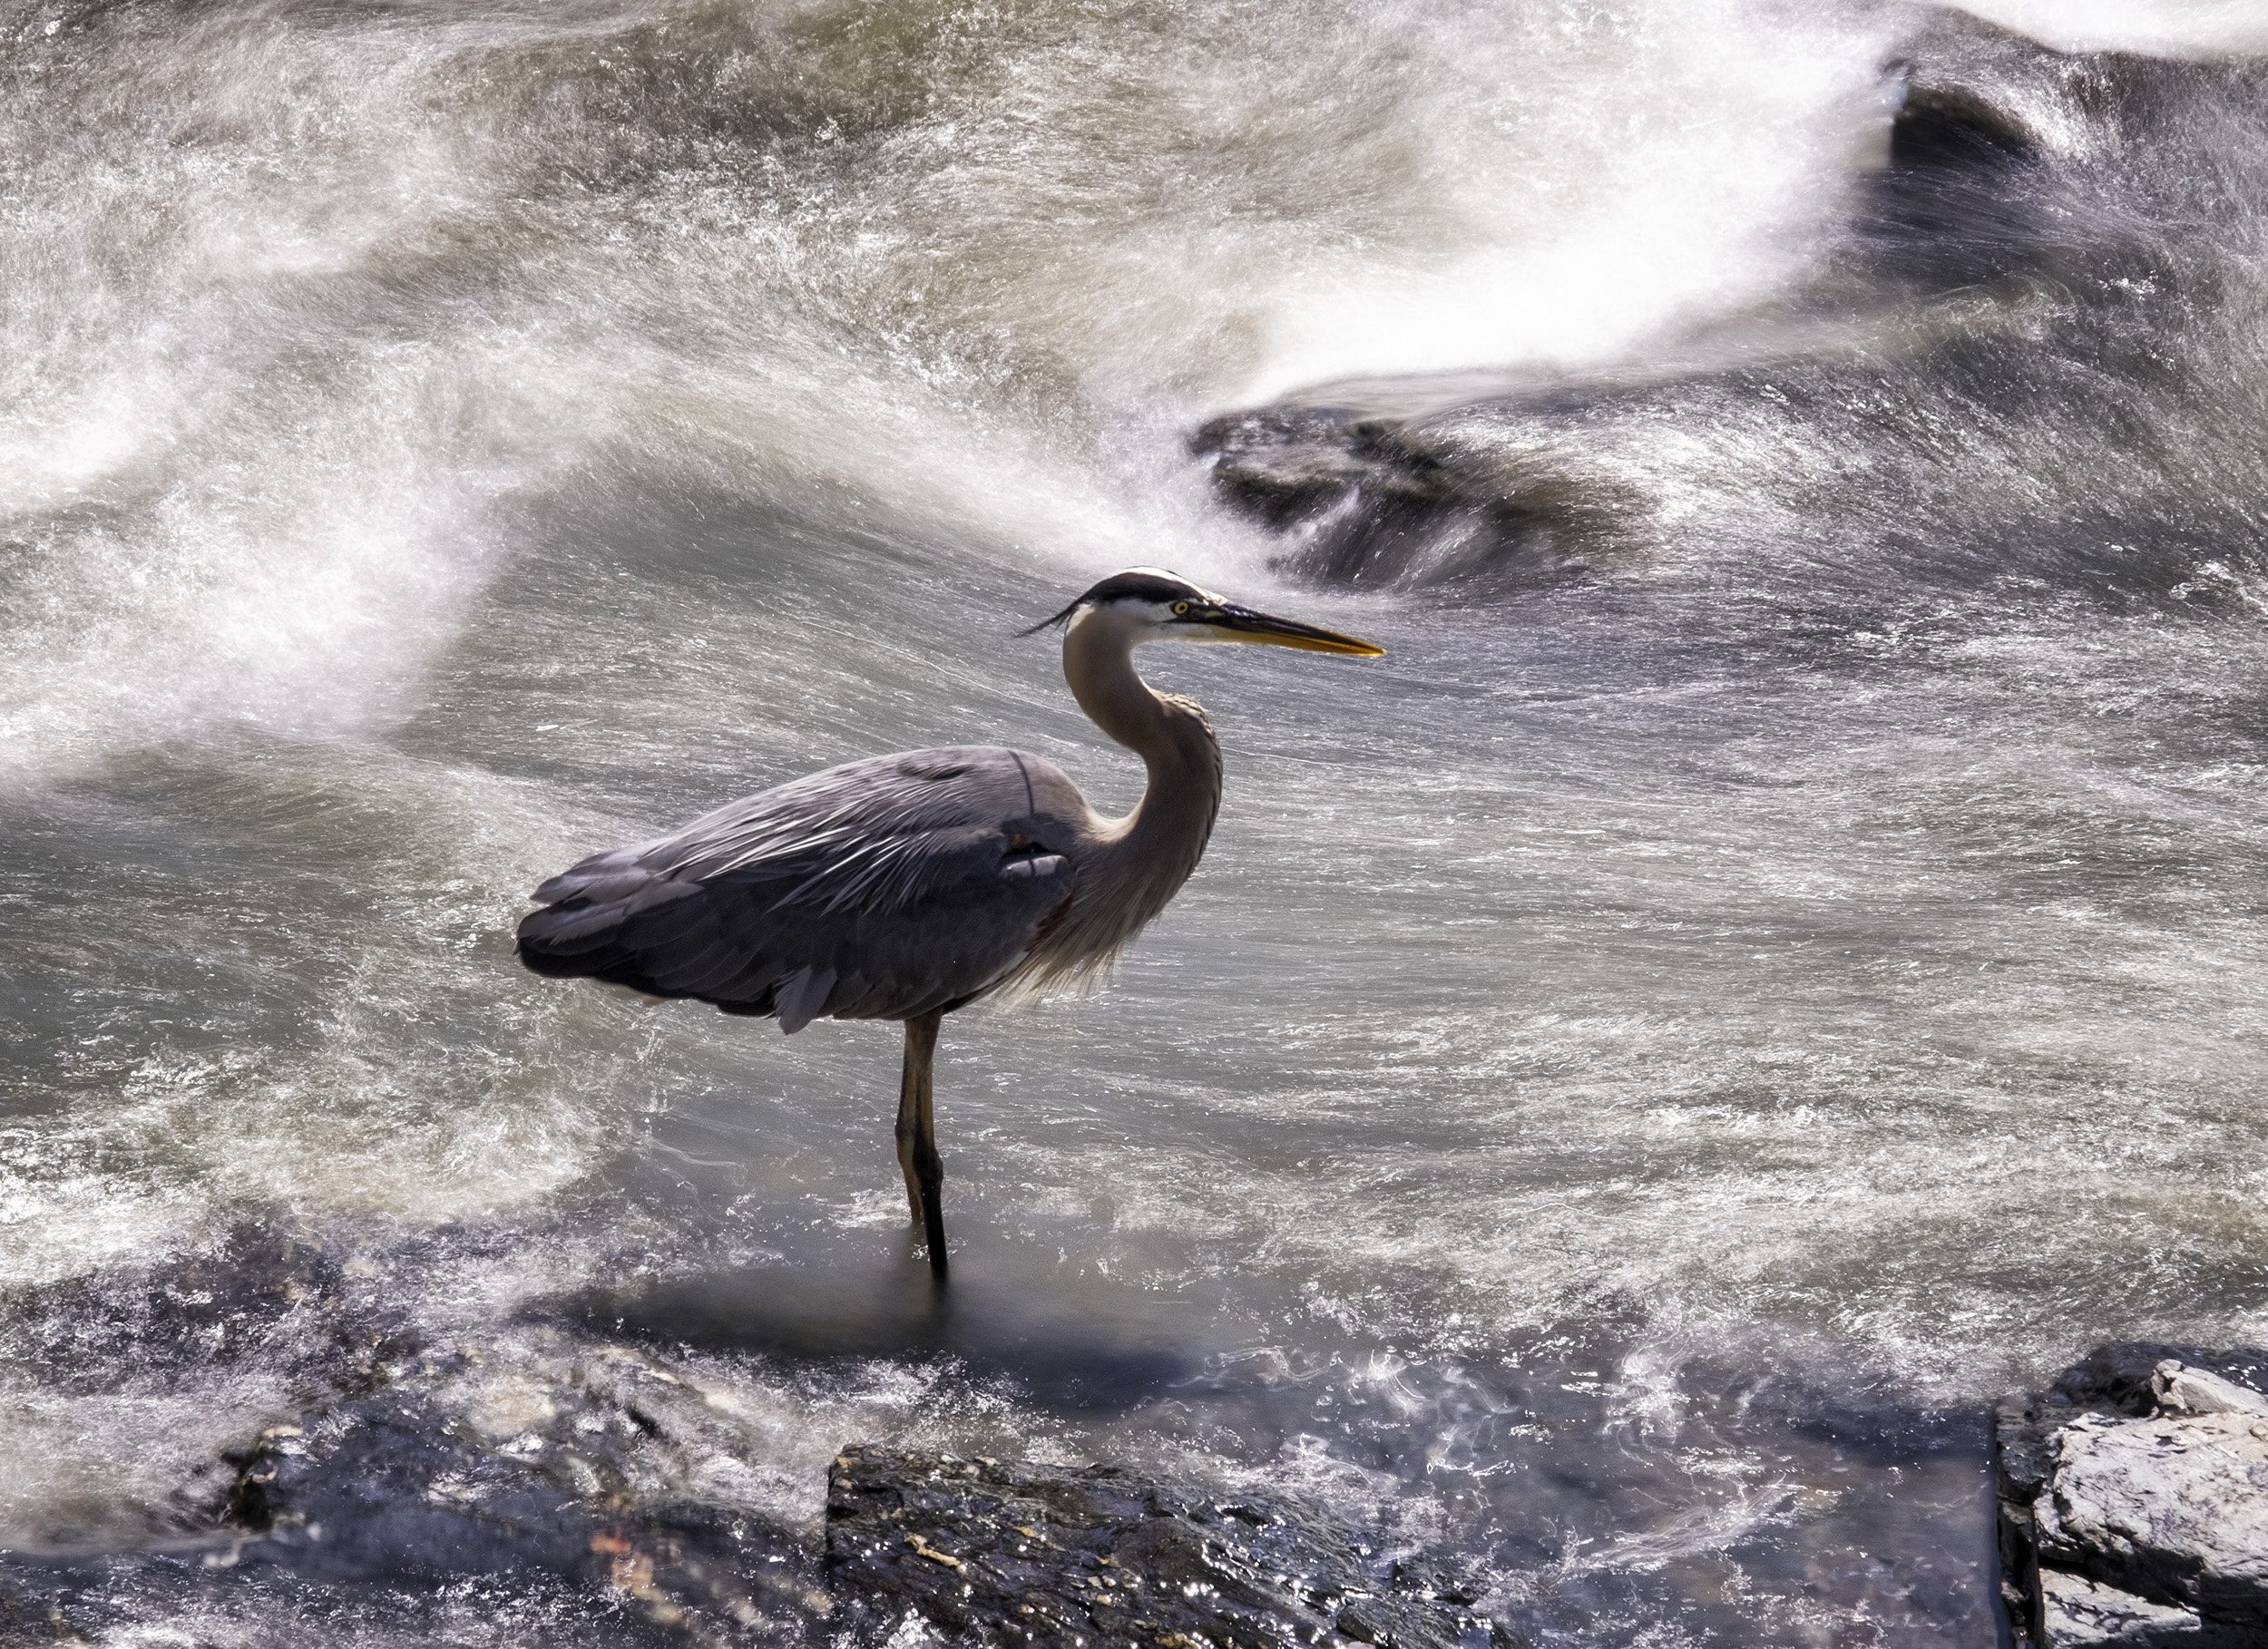 190521 Great Falls Heron 101-1.jpg